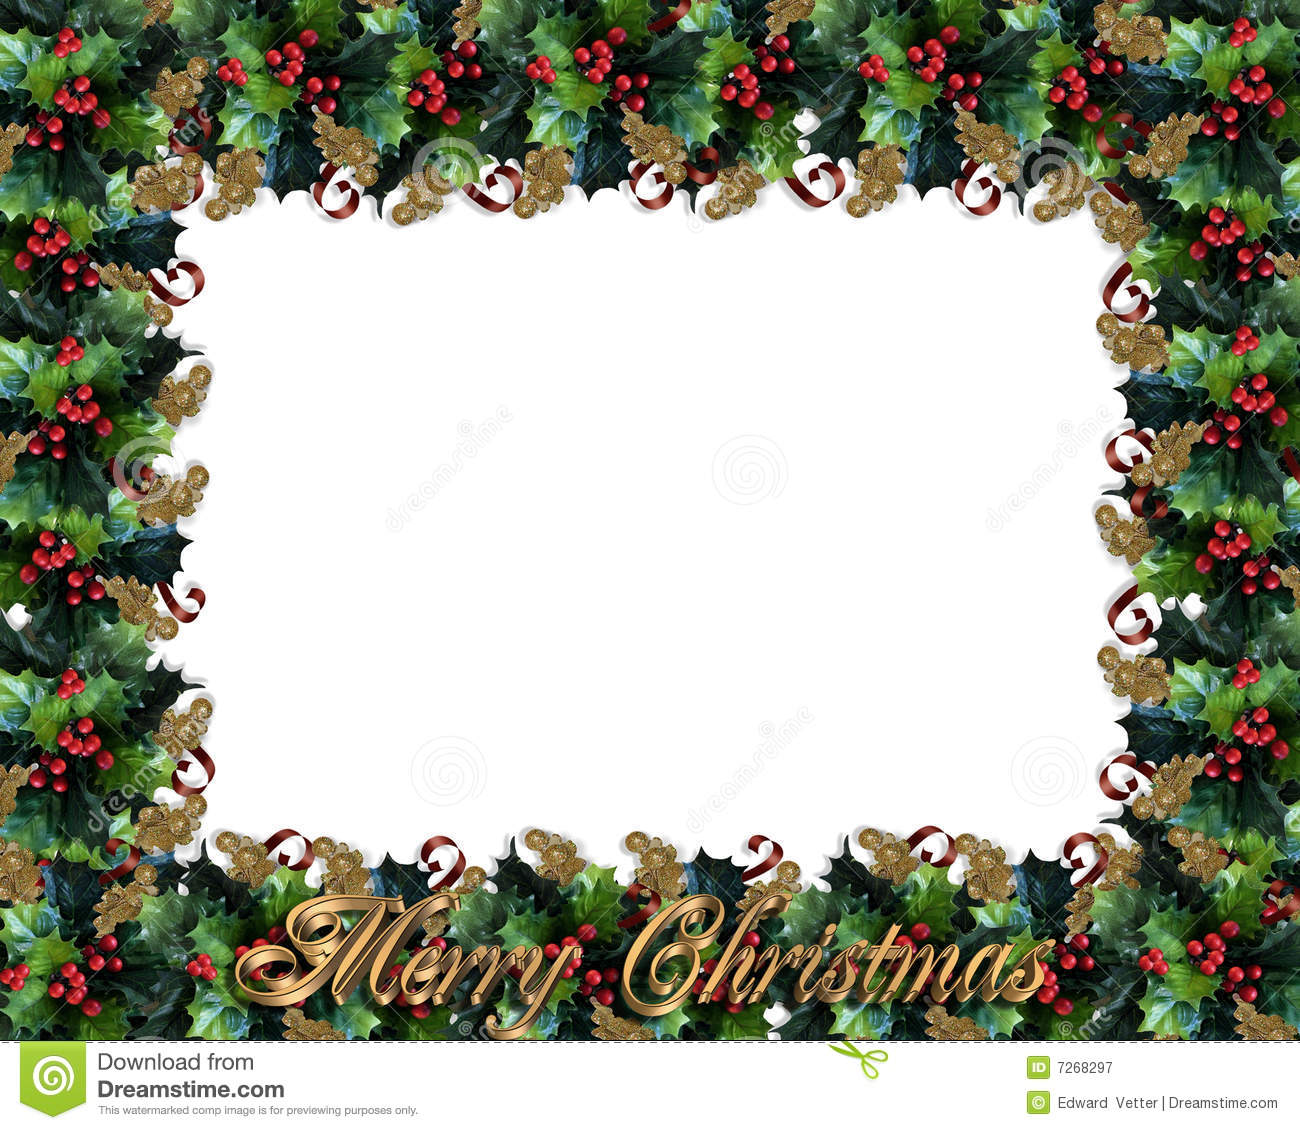 Christmas design holly leaves for greeting card invitation, border or ...